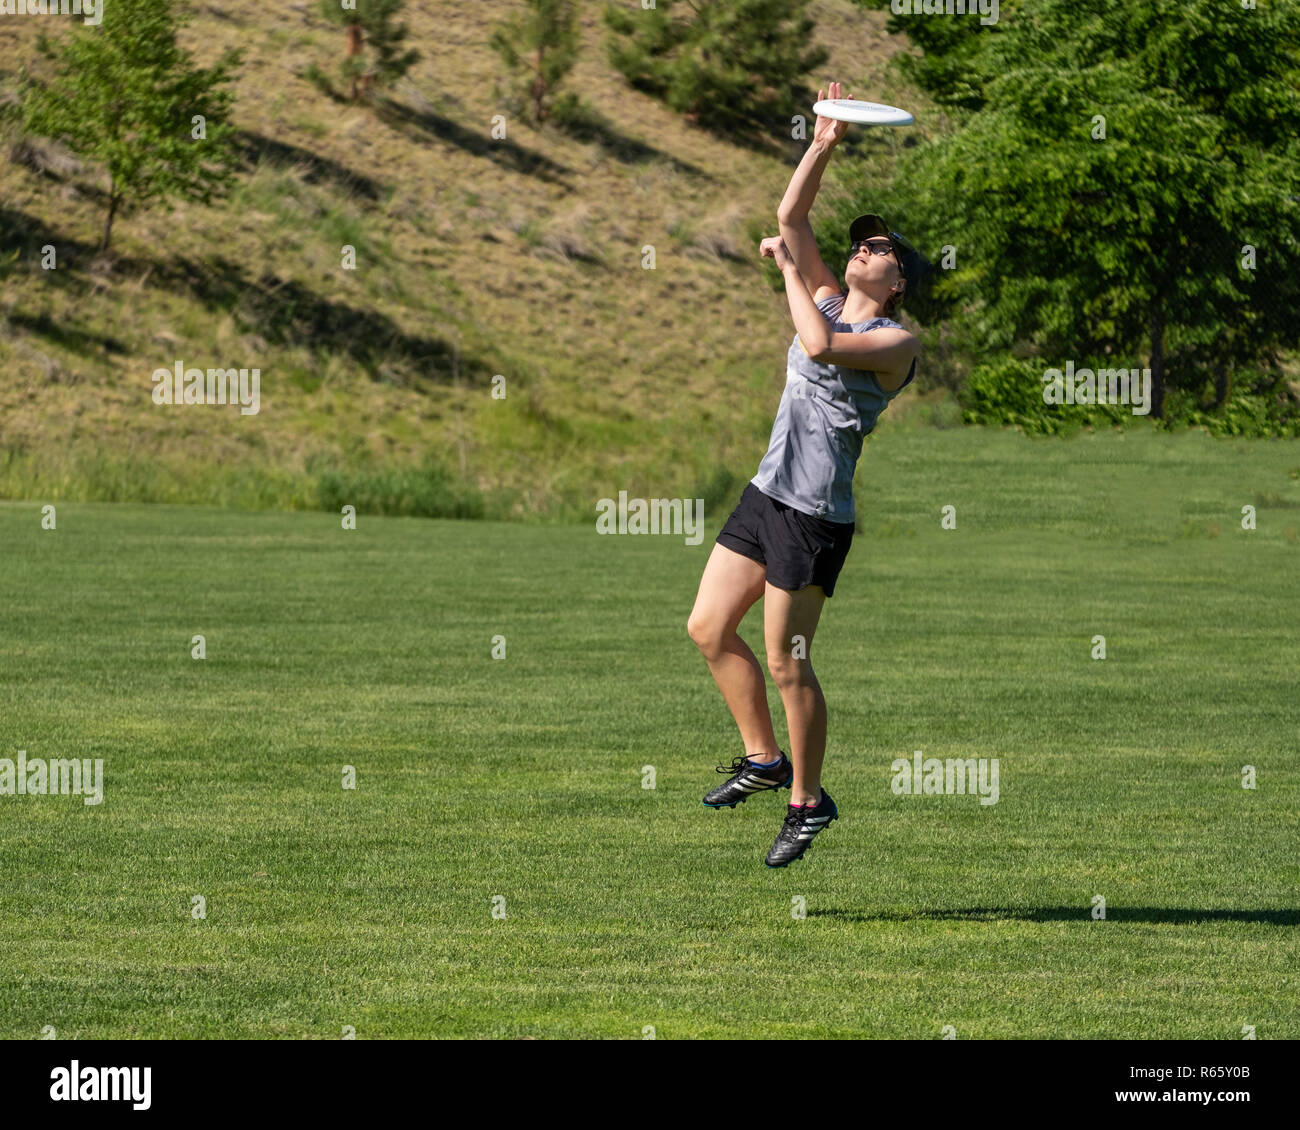 A young very fit woman leaps in the air, and concentrates as she catches a flying disc - Stock Image